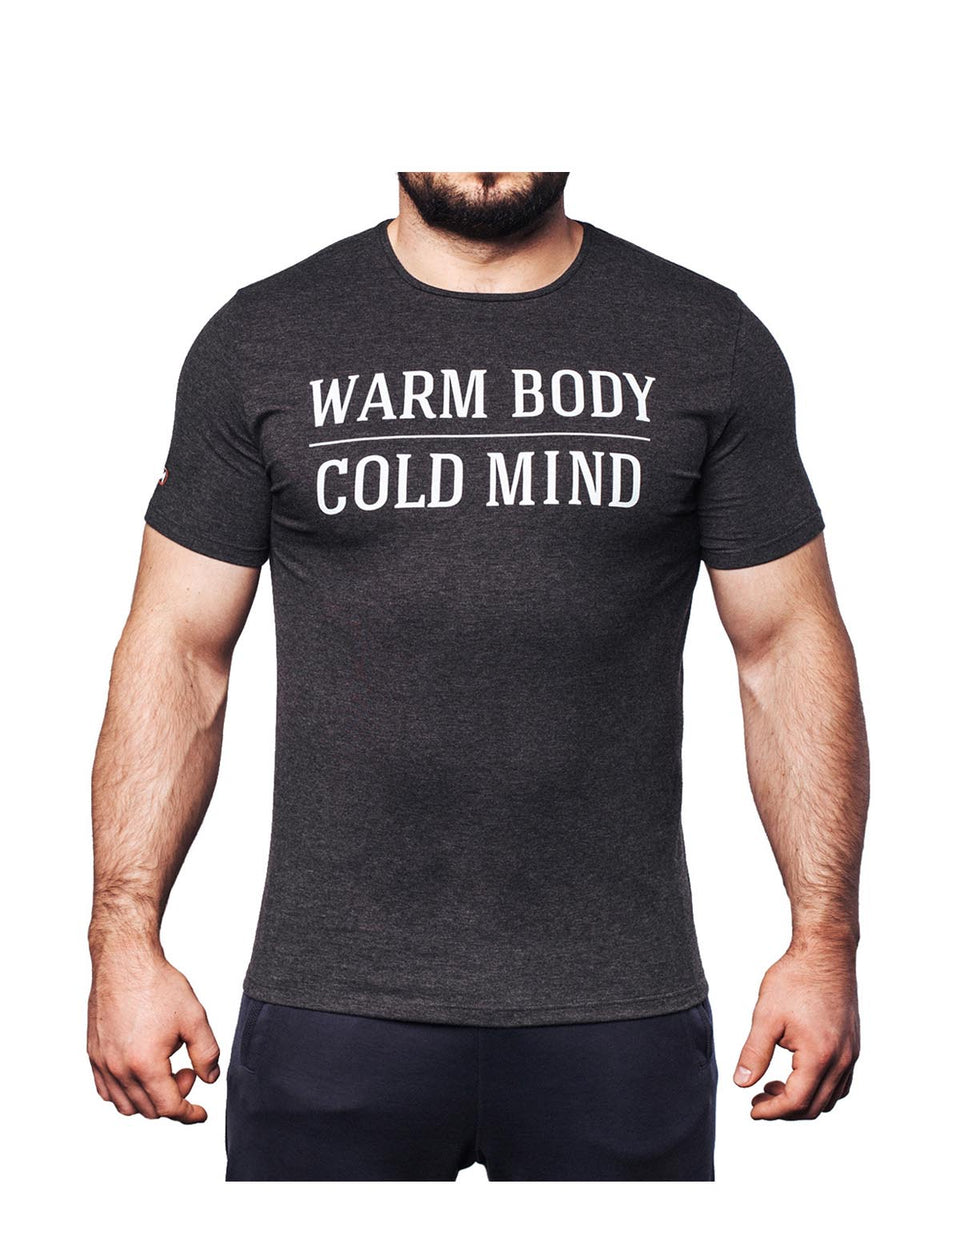 Warm Body Cold Mind Men's T-Shirt V2 Classic